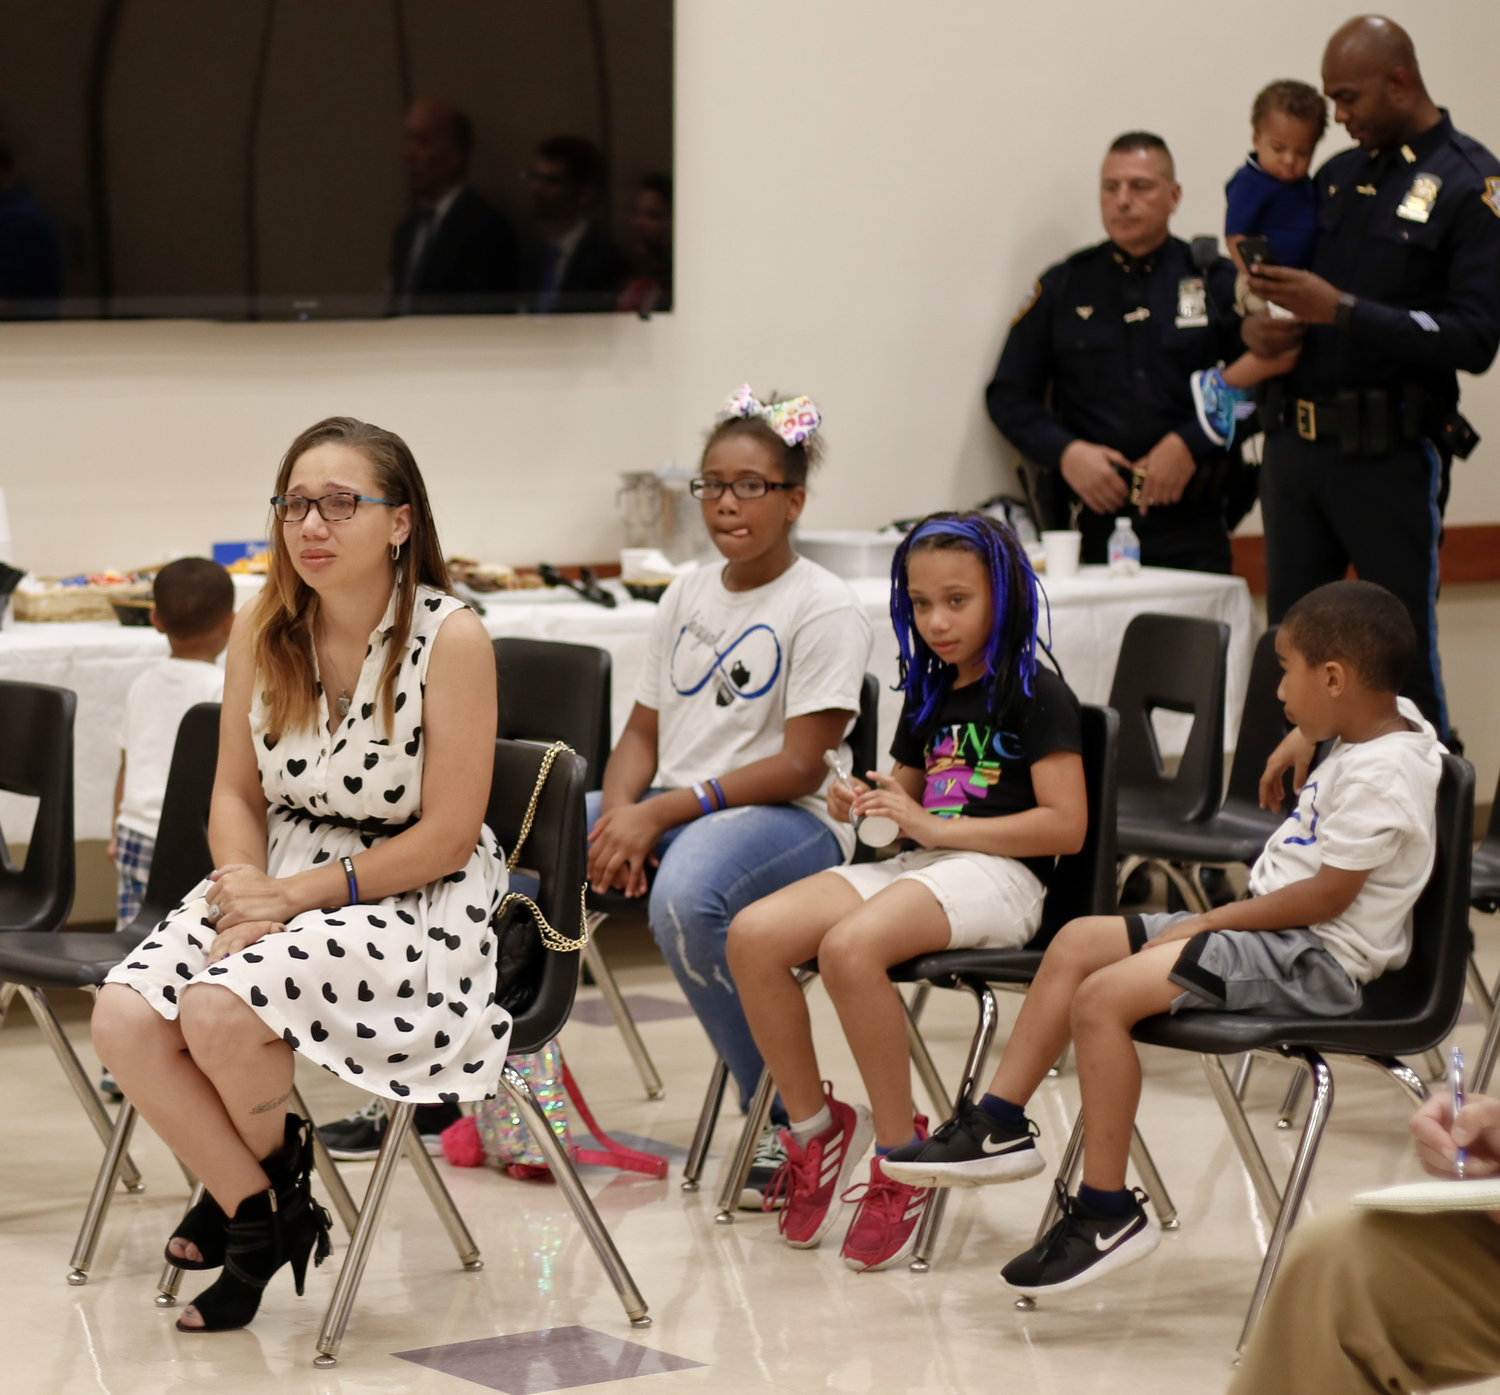 Cecilia Jackson St. Arromand, widow of Elmont NYPD Officer Marc St. Arromand, tearfully listened to remarks from officers of her husband's highway patrol unit as well as Long Island Jewish Valley Stream hospital administrators, with her children Sa'niyah, Calya and Michael.